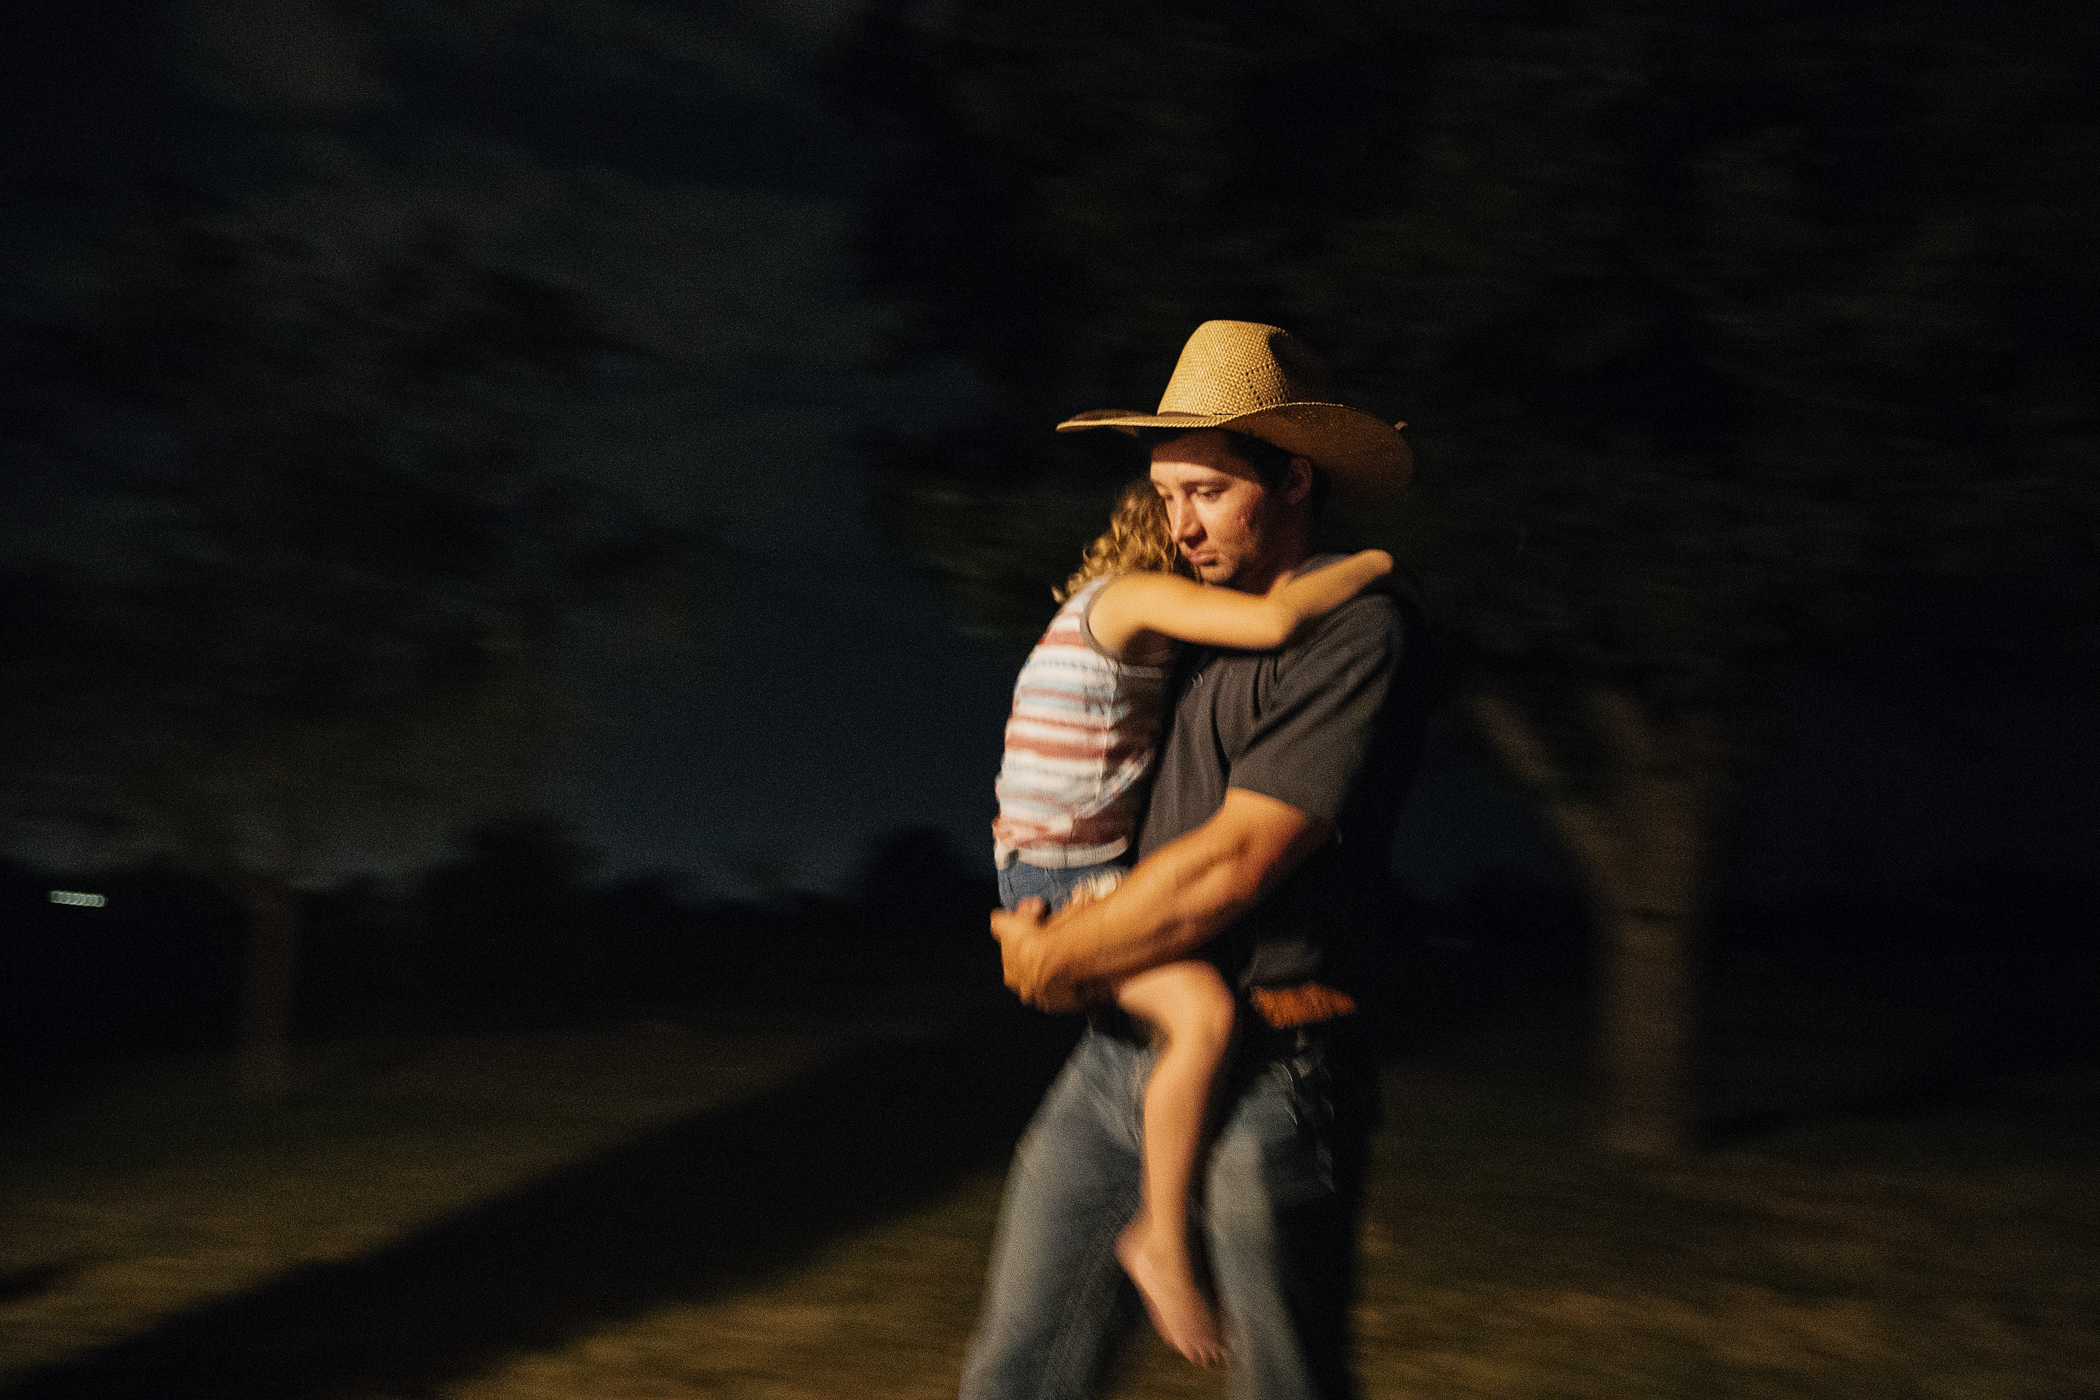 Hawkins carrying Shawn's daughter Paisley into the house after a long night.